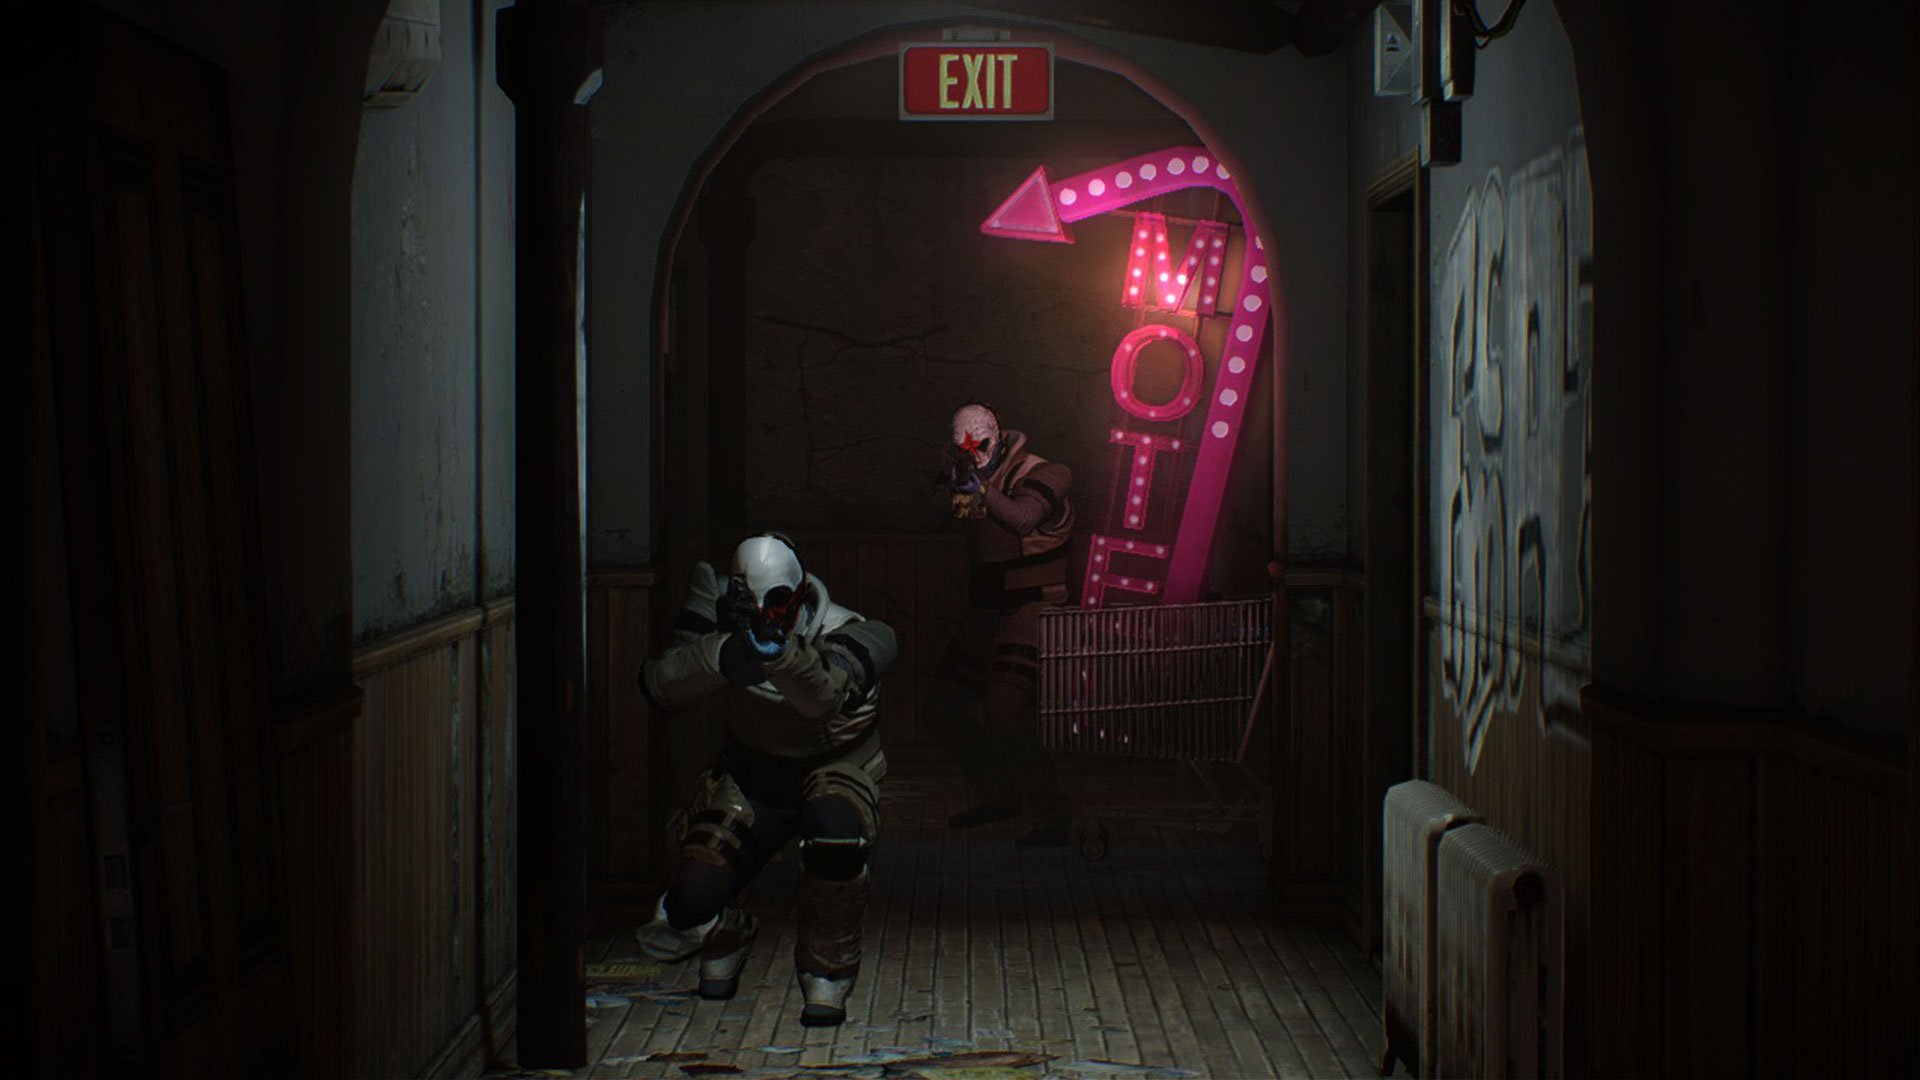 Payday  Cursed Room Mask Machine